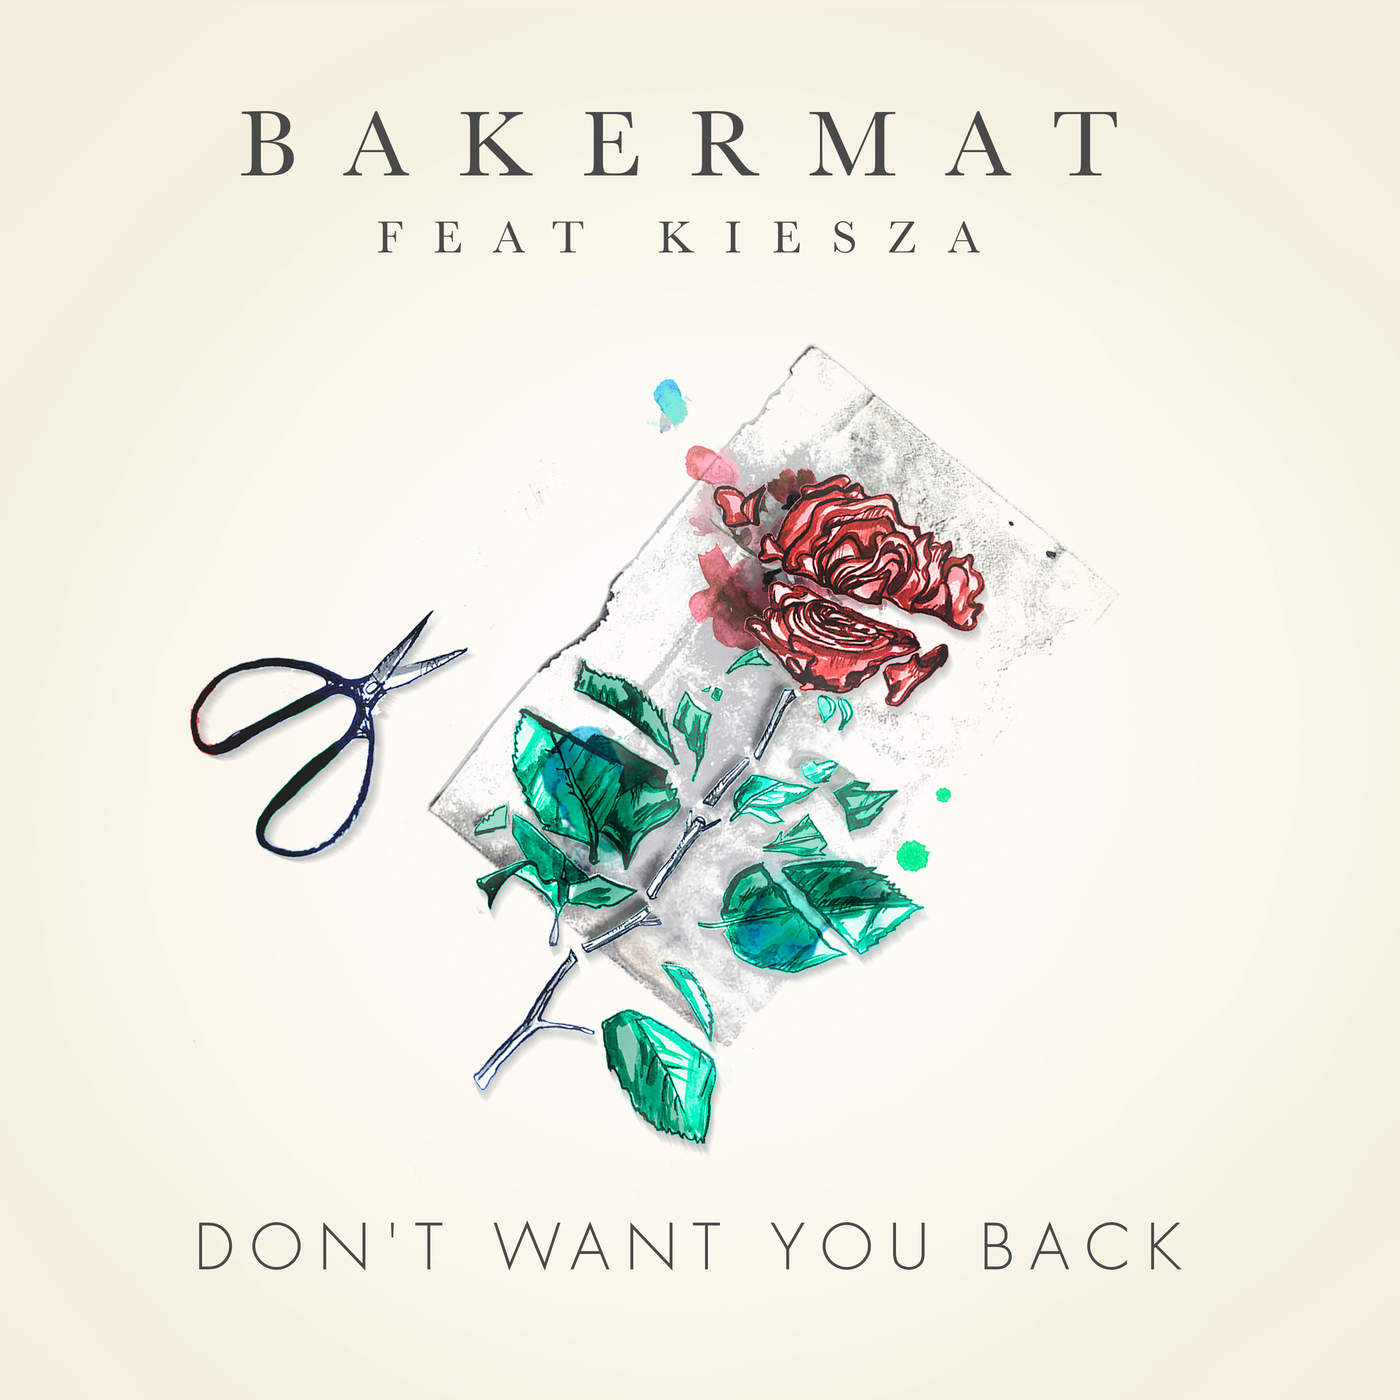 Bakermat - Don't Want You Back (feat. Kiesza) - Single Cover